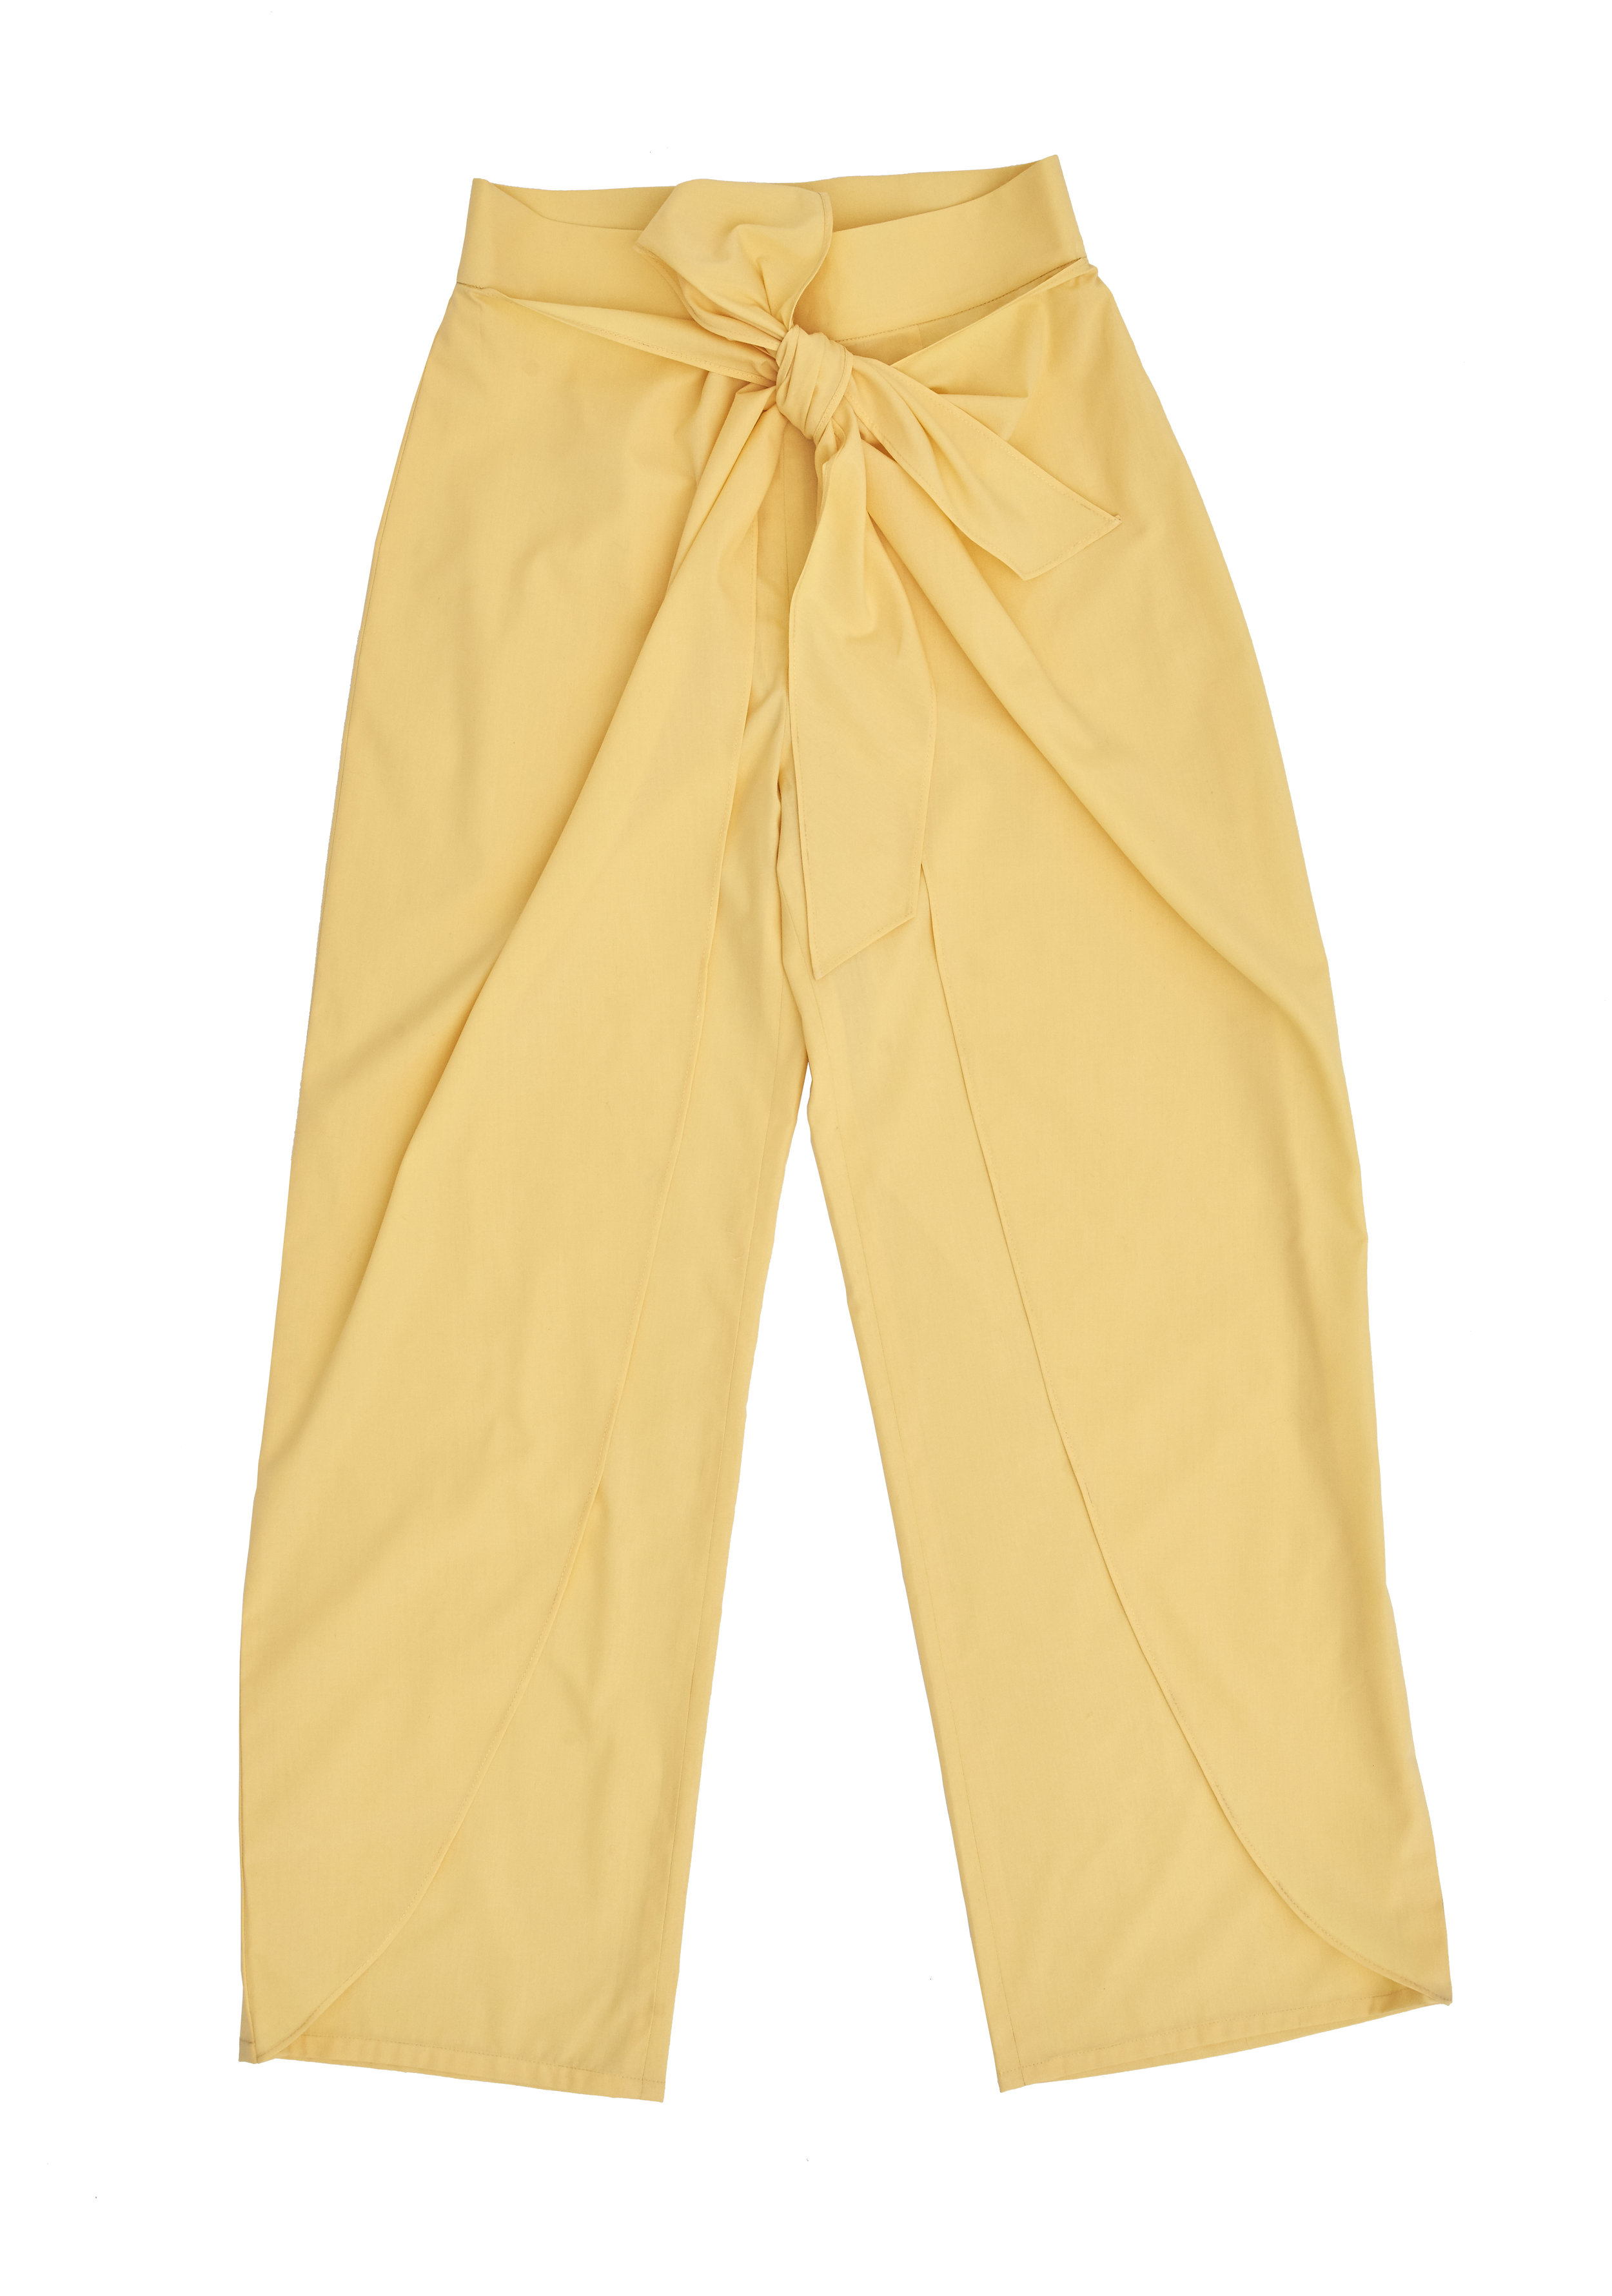 Wraparound Pants olors available